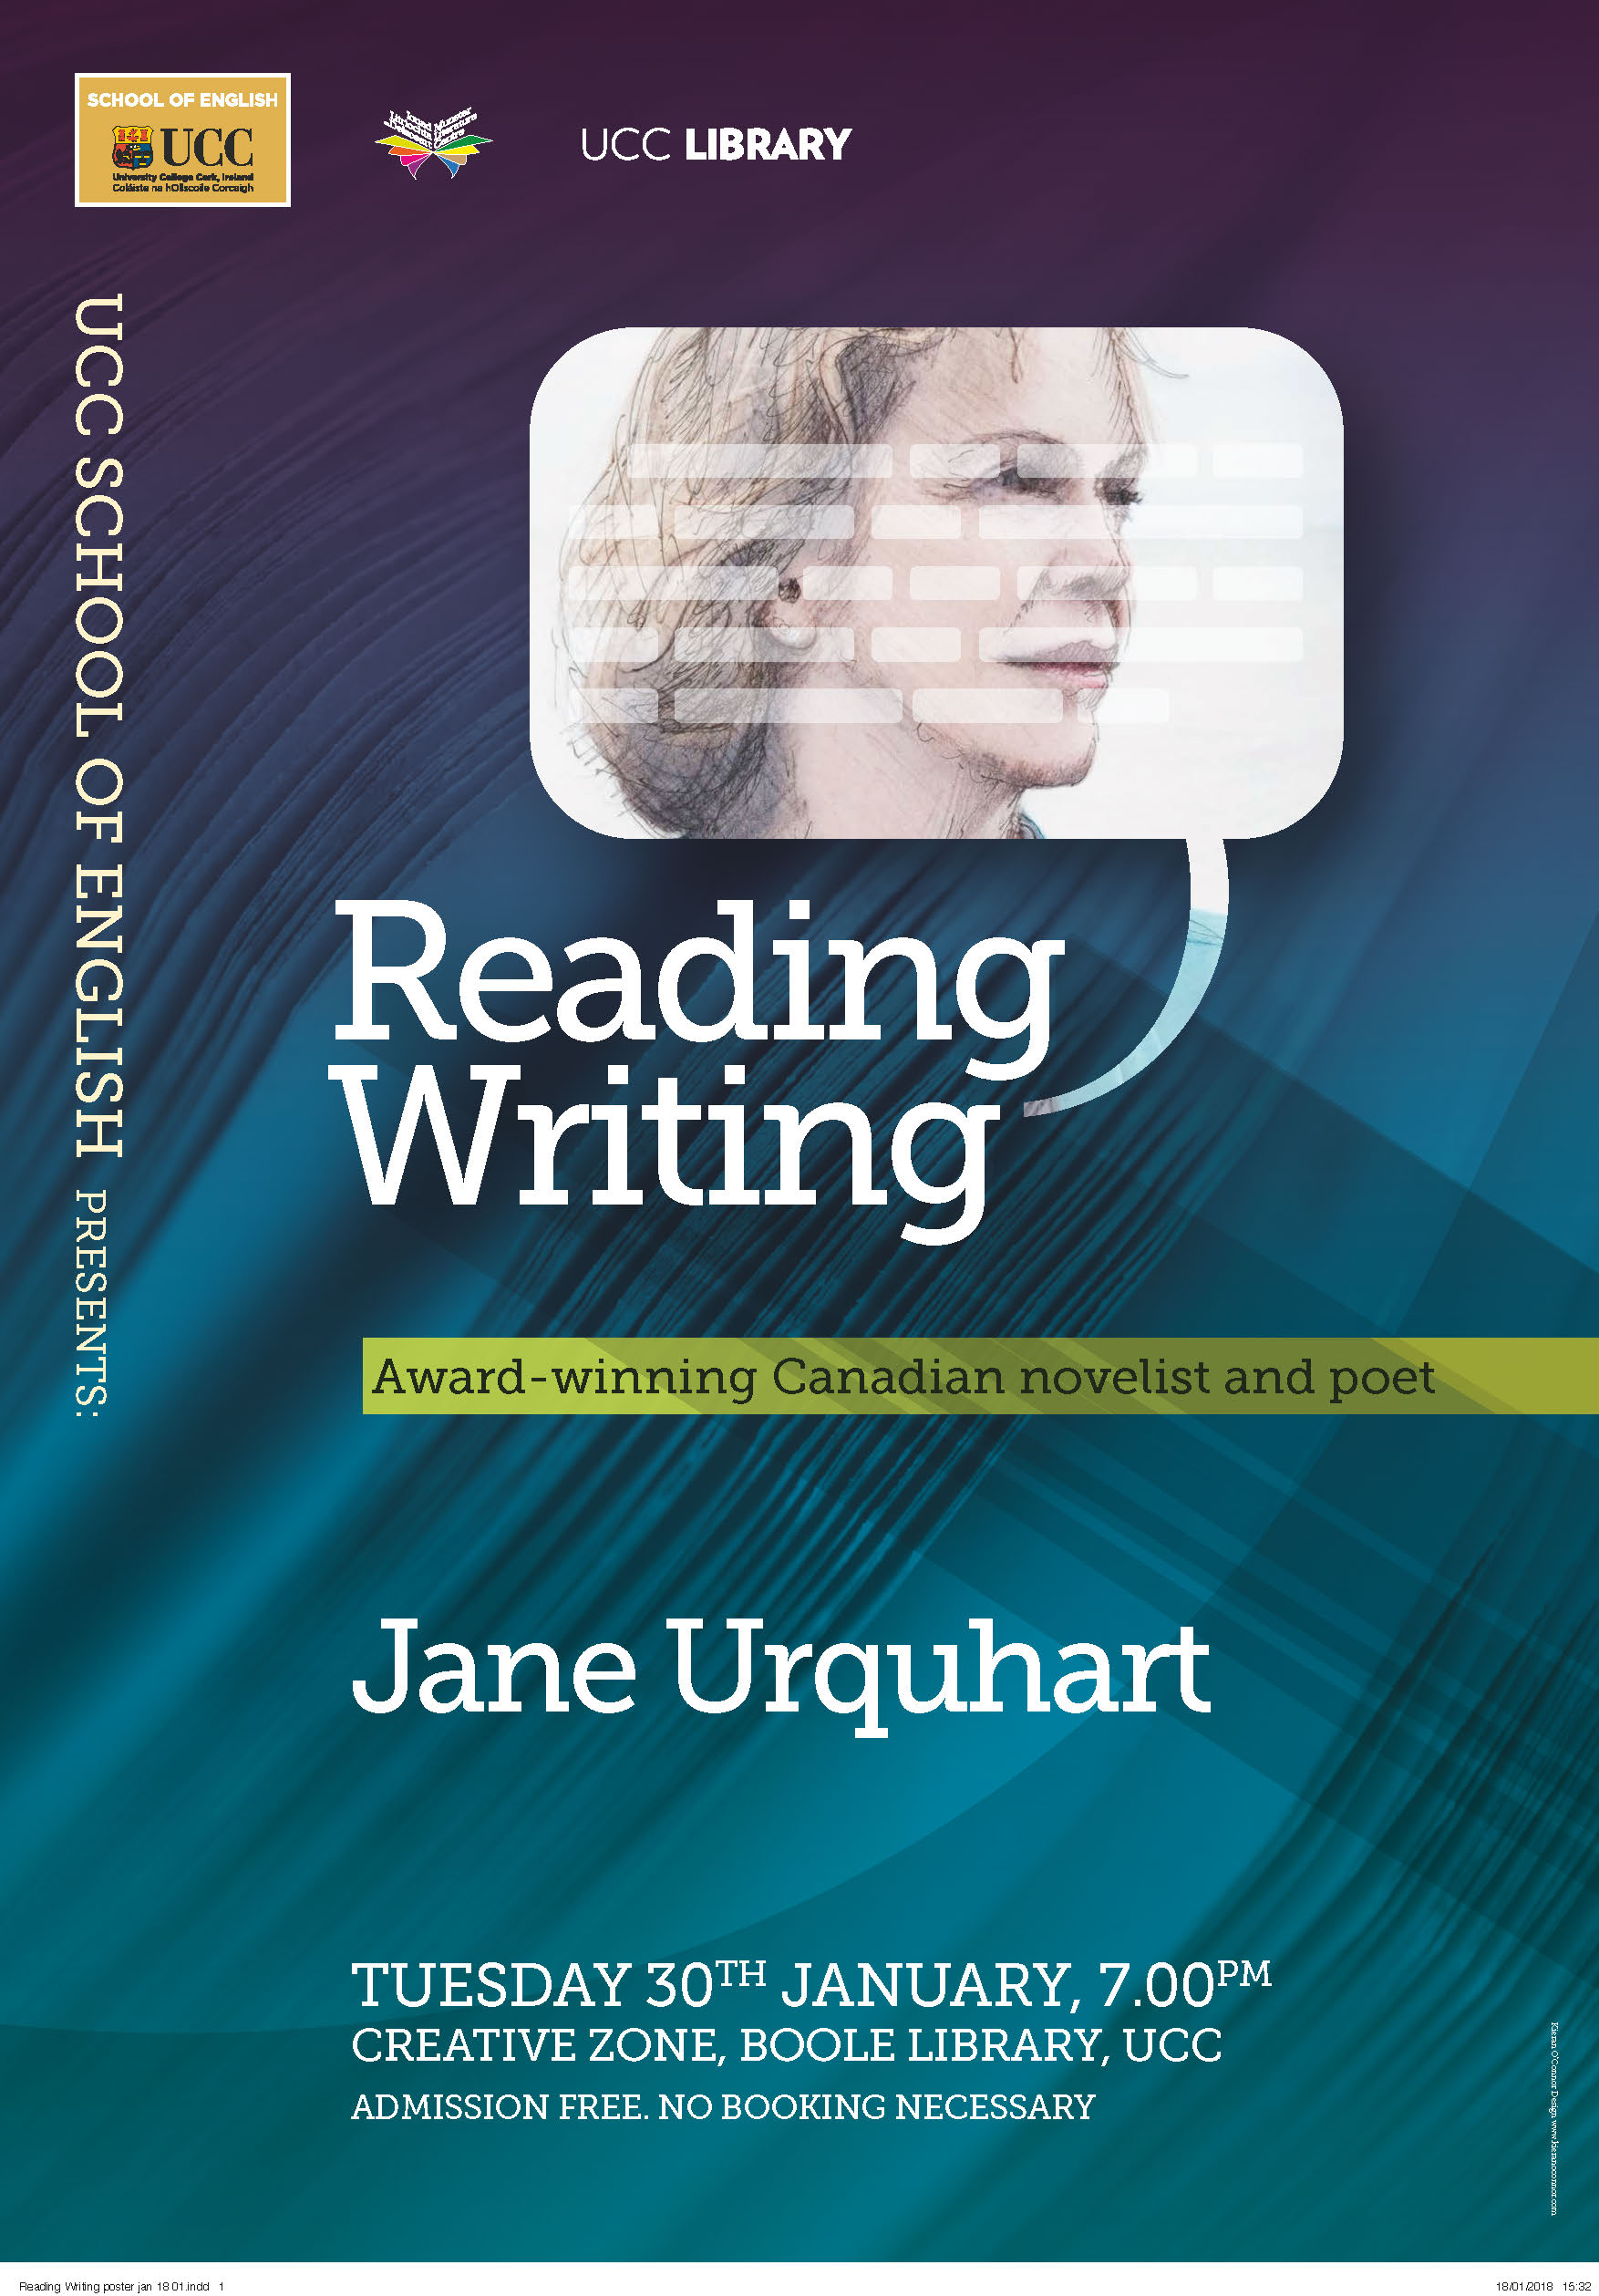 jane spiro creative poetry writing She is the author of creative poetry writing (2004) and storybuilding (2007) with  oxford universiyt press and published plays, stories and poems both in.